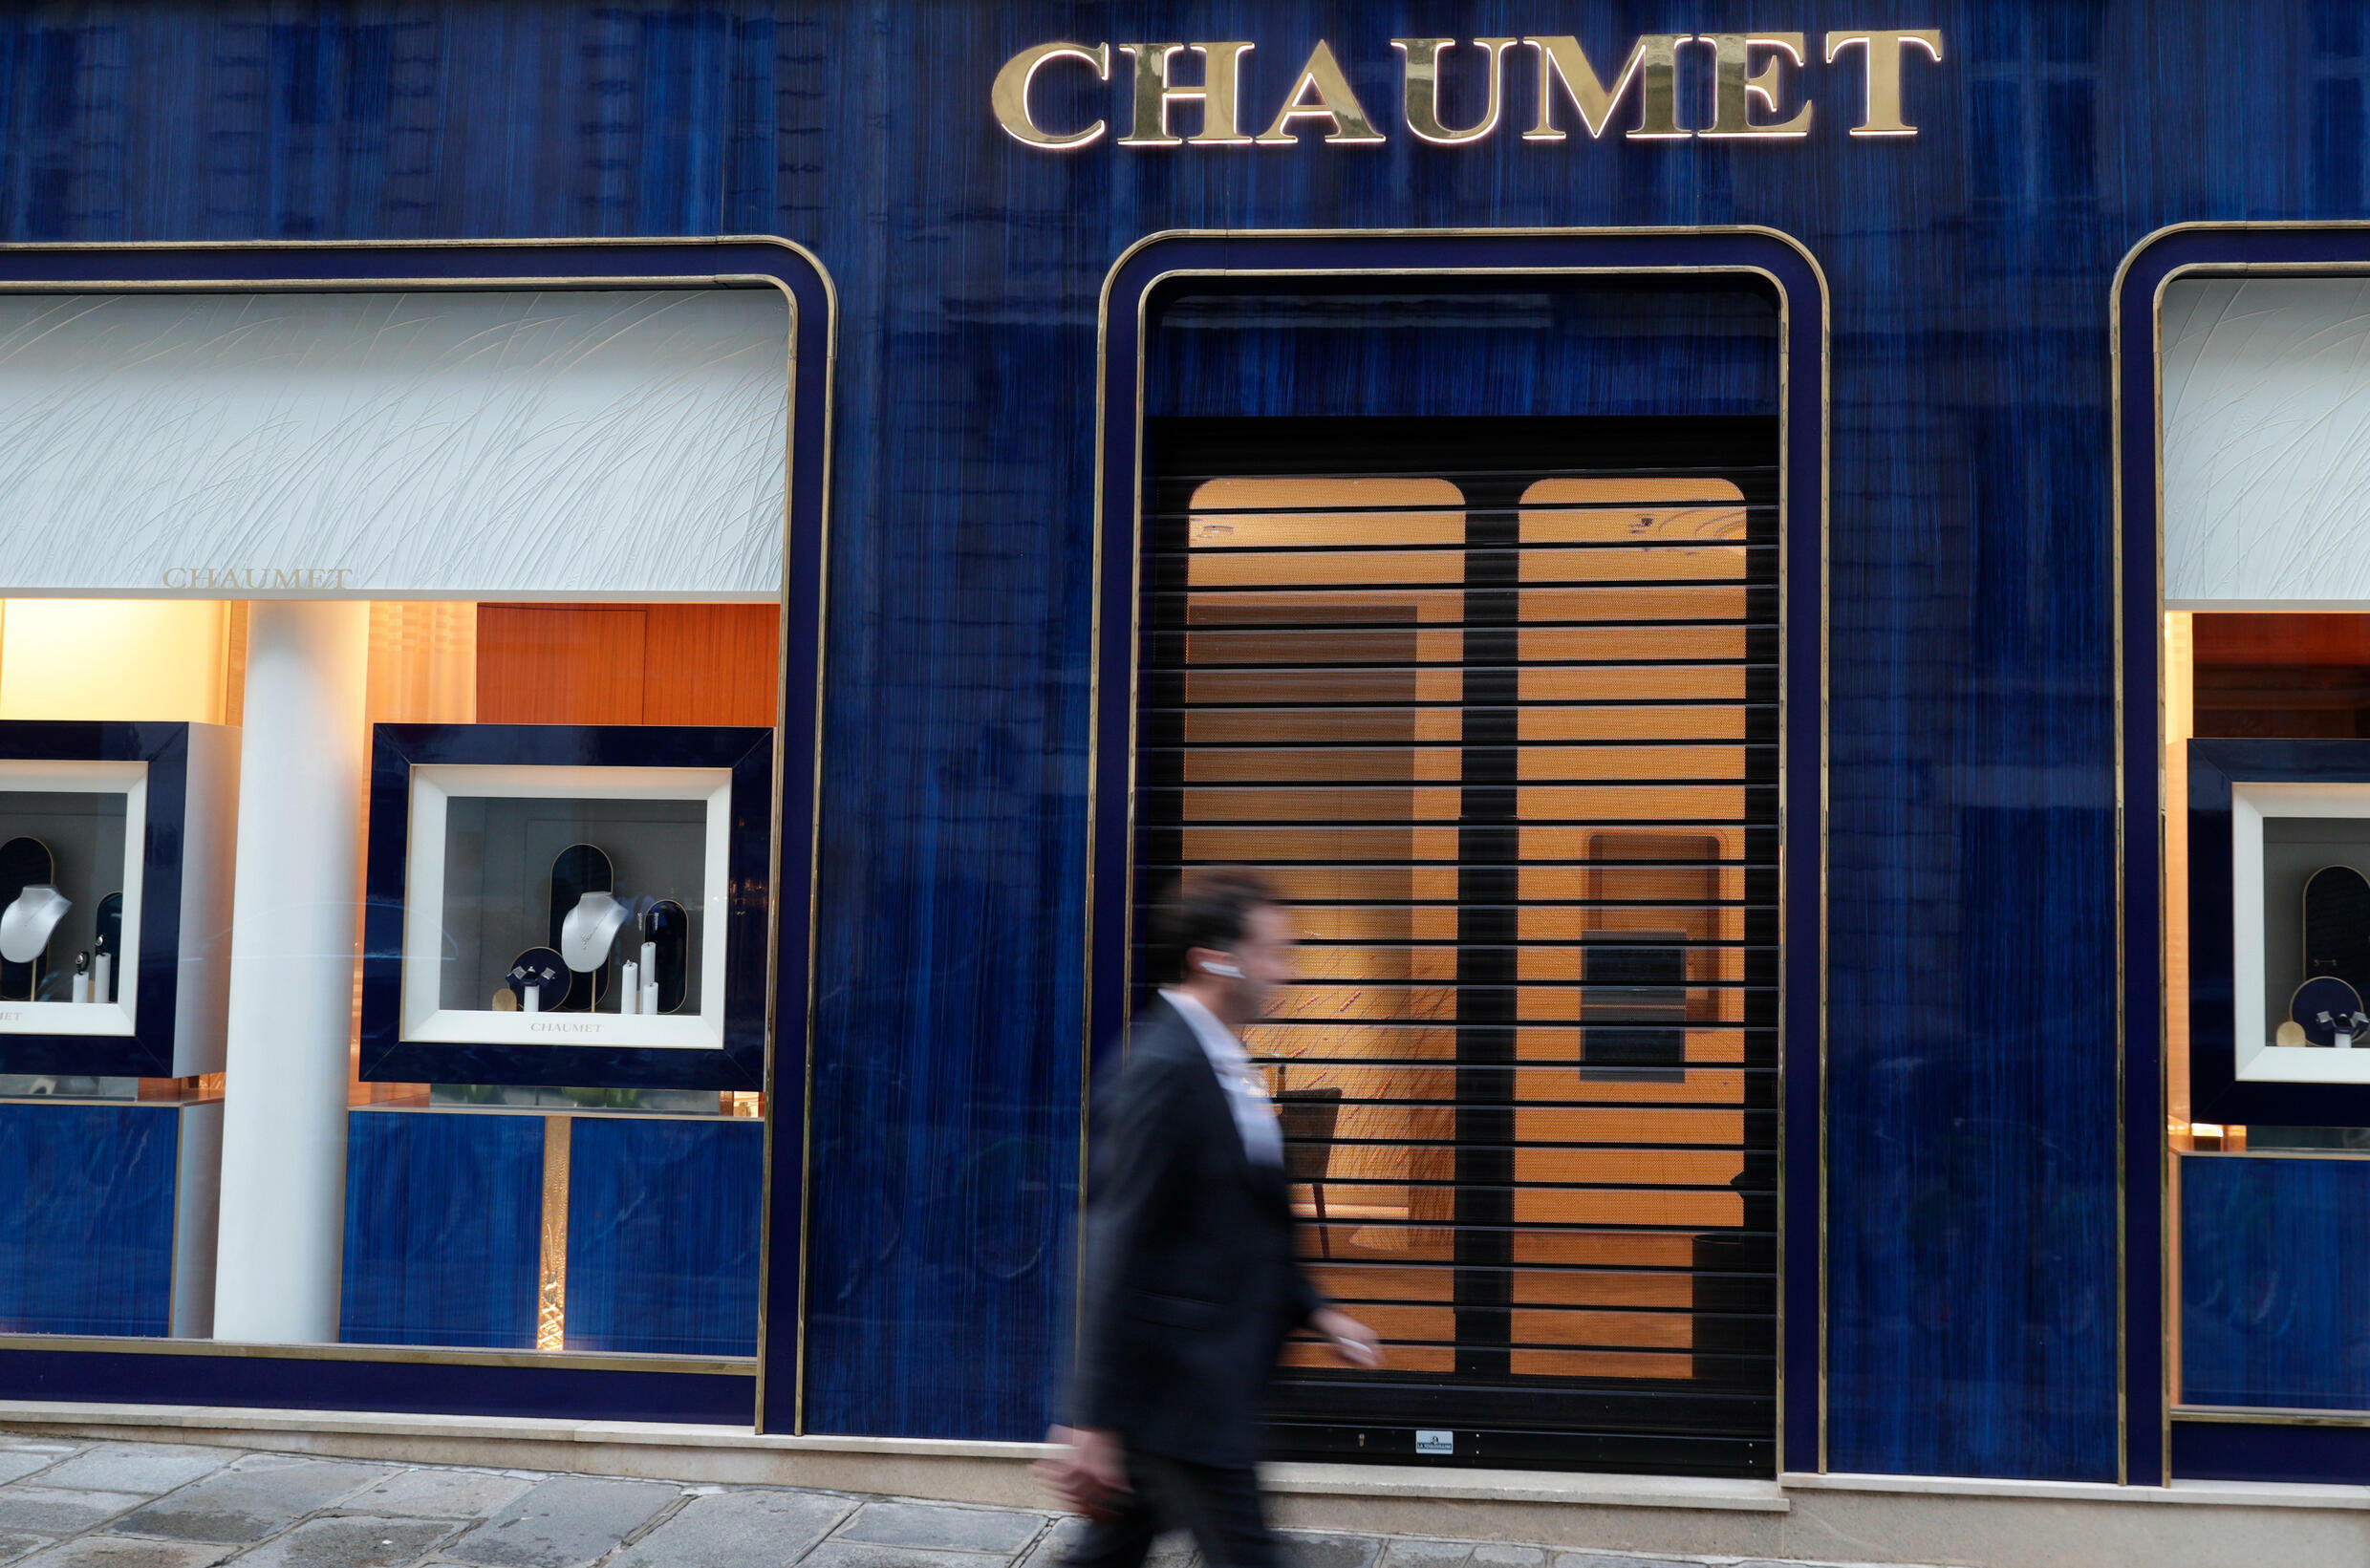 Chaumet is now part of luxury goods maker LVMH